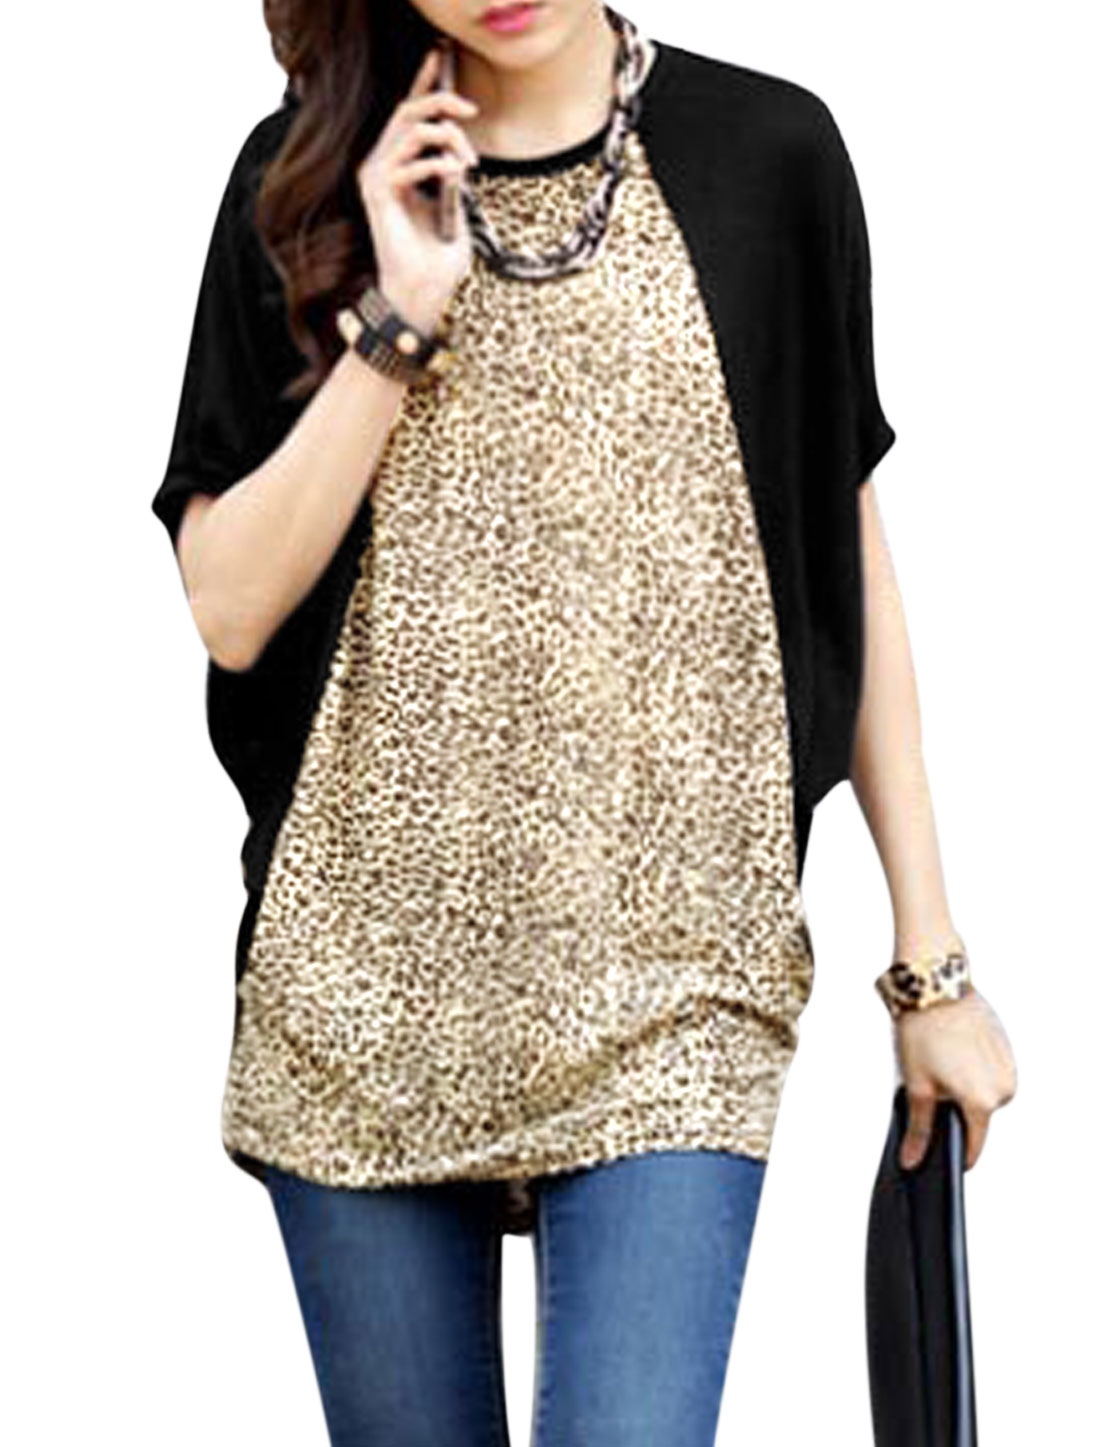 Lady Short Batwing Sleeve Leopard Prints Loose Fit Tunic Top Black Brown S